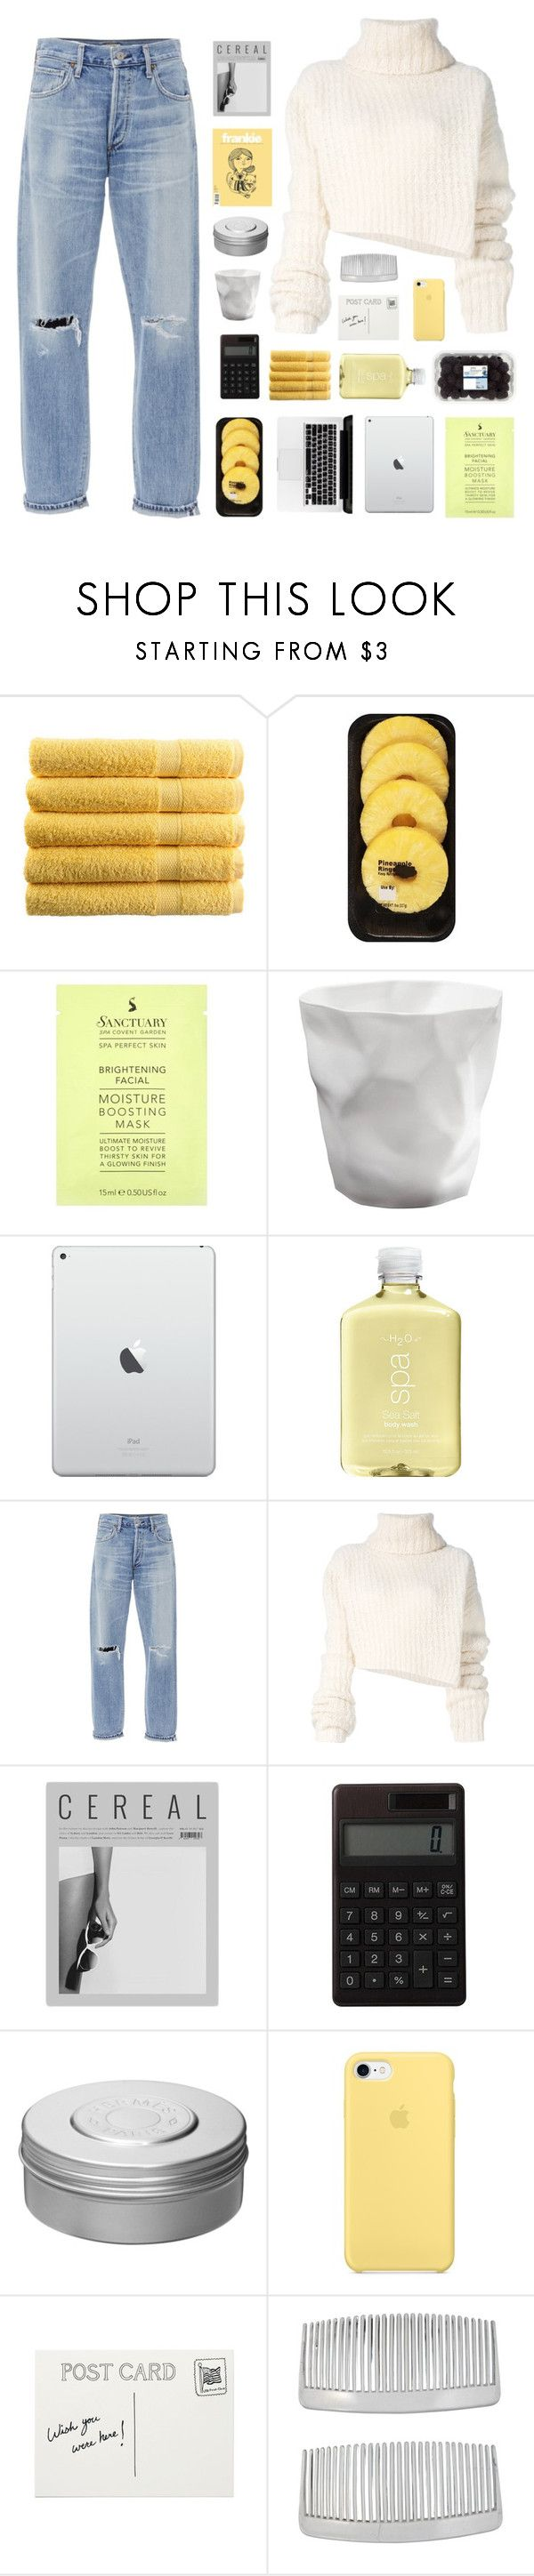 """""""oh, I must be seeing blind ☆"""" by golden-rod ❤ liked on Polyvore featuring Lindt, H2O+, Citizens of Humanity, Ann Demeulemeester, Muji, Hermès and John Lewis"""